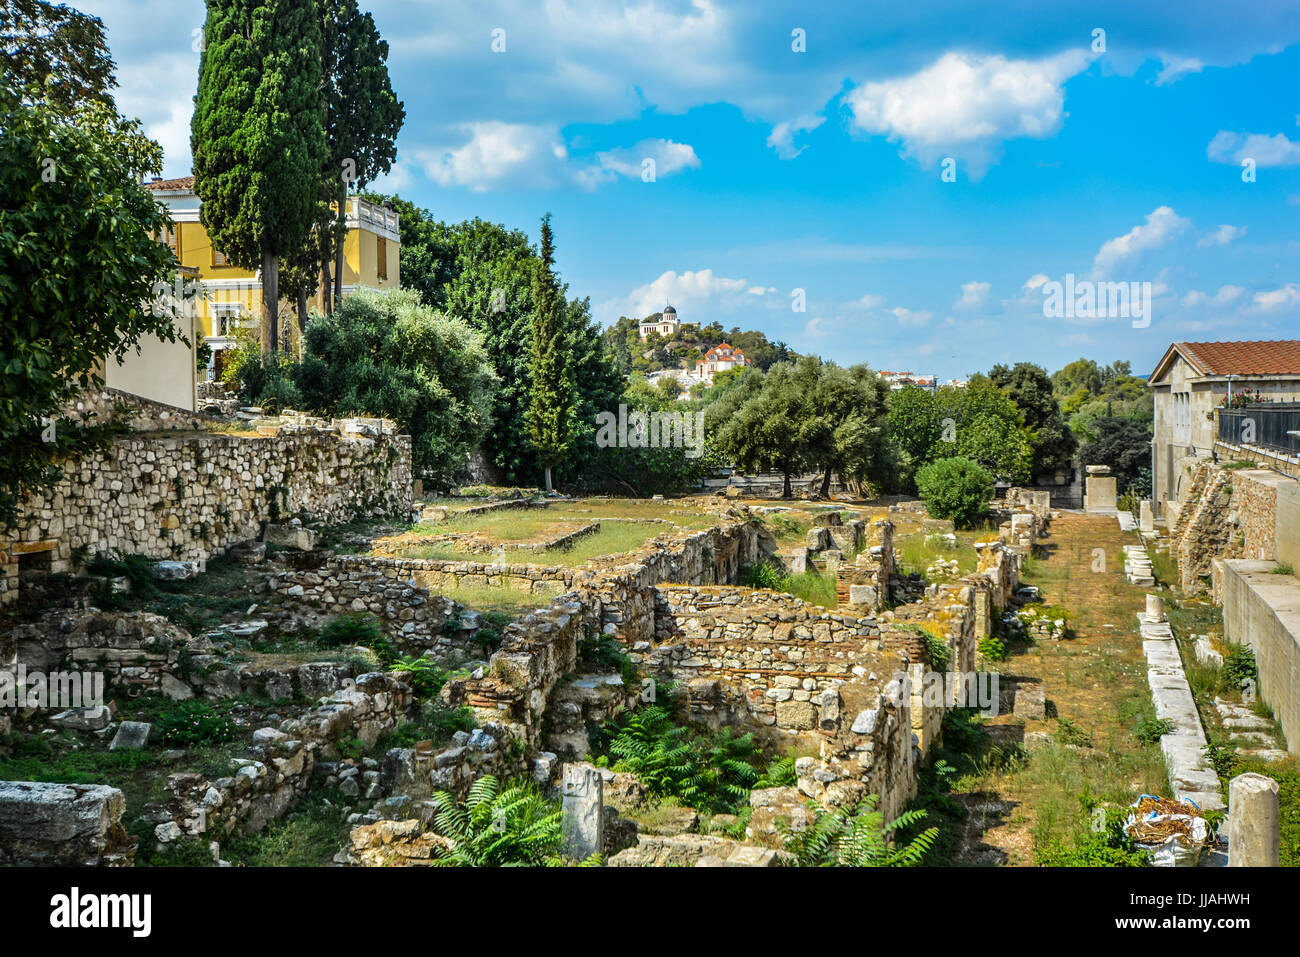 Roadside ruins in Athens Greece with a Greek church on a hill overlooking the city - Stock Image